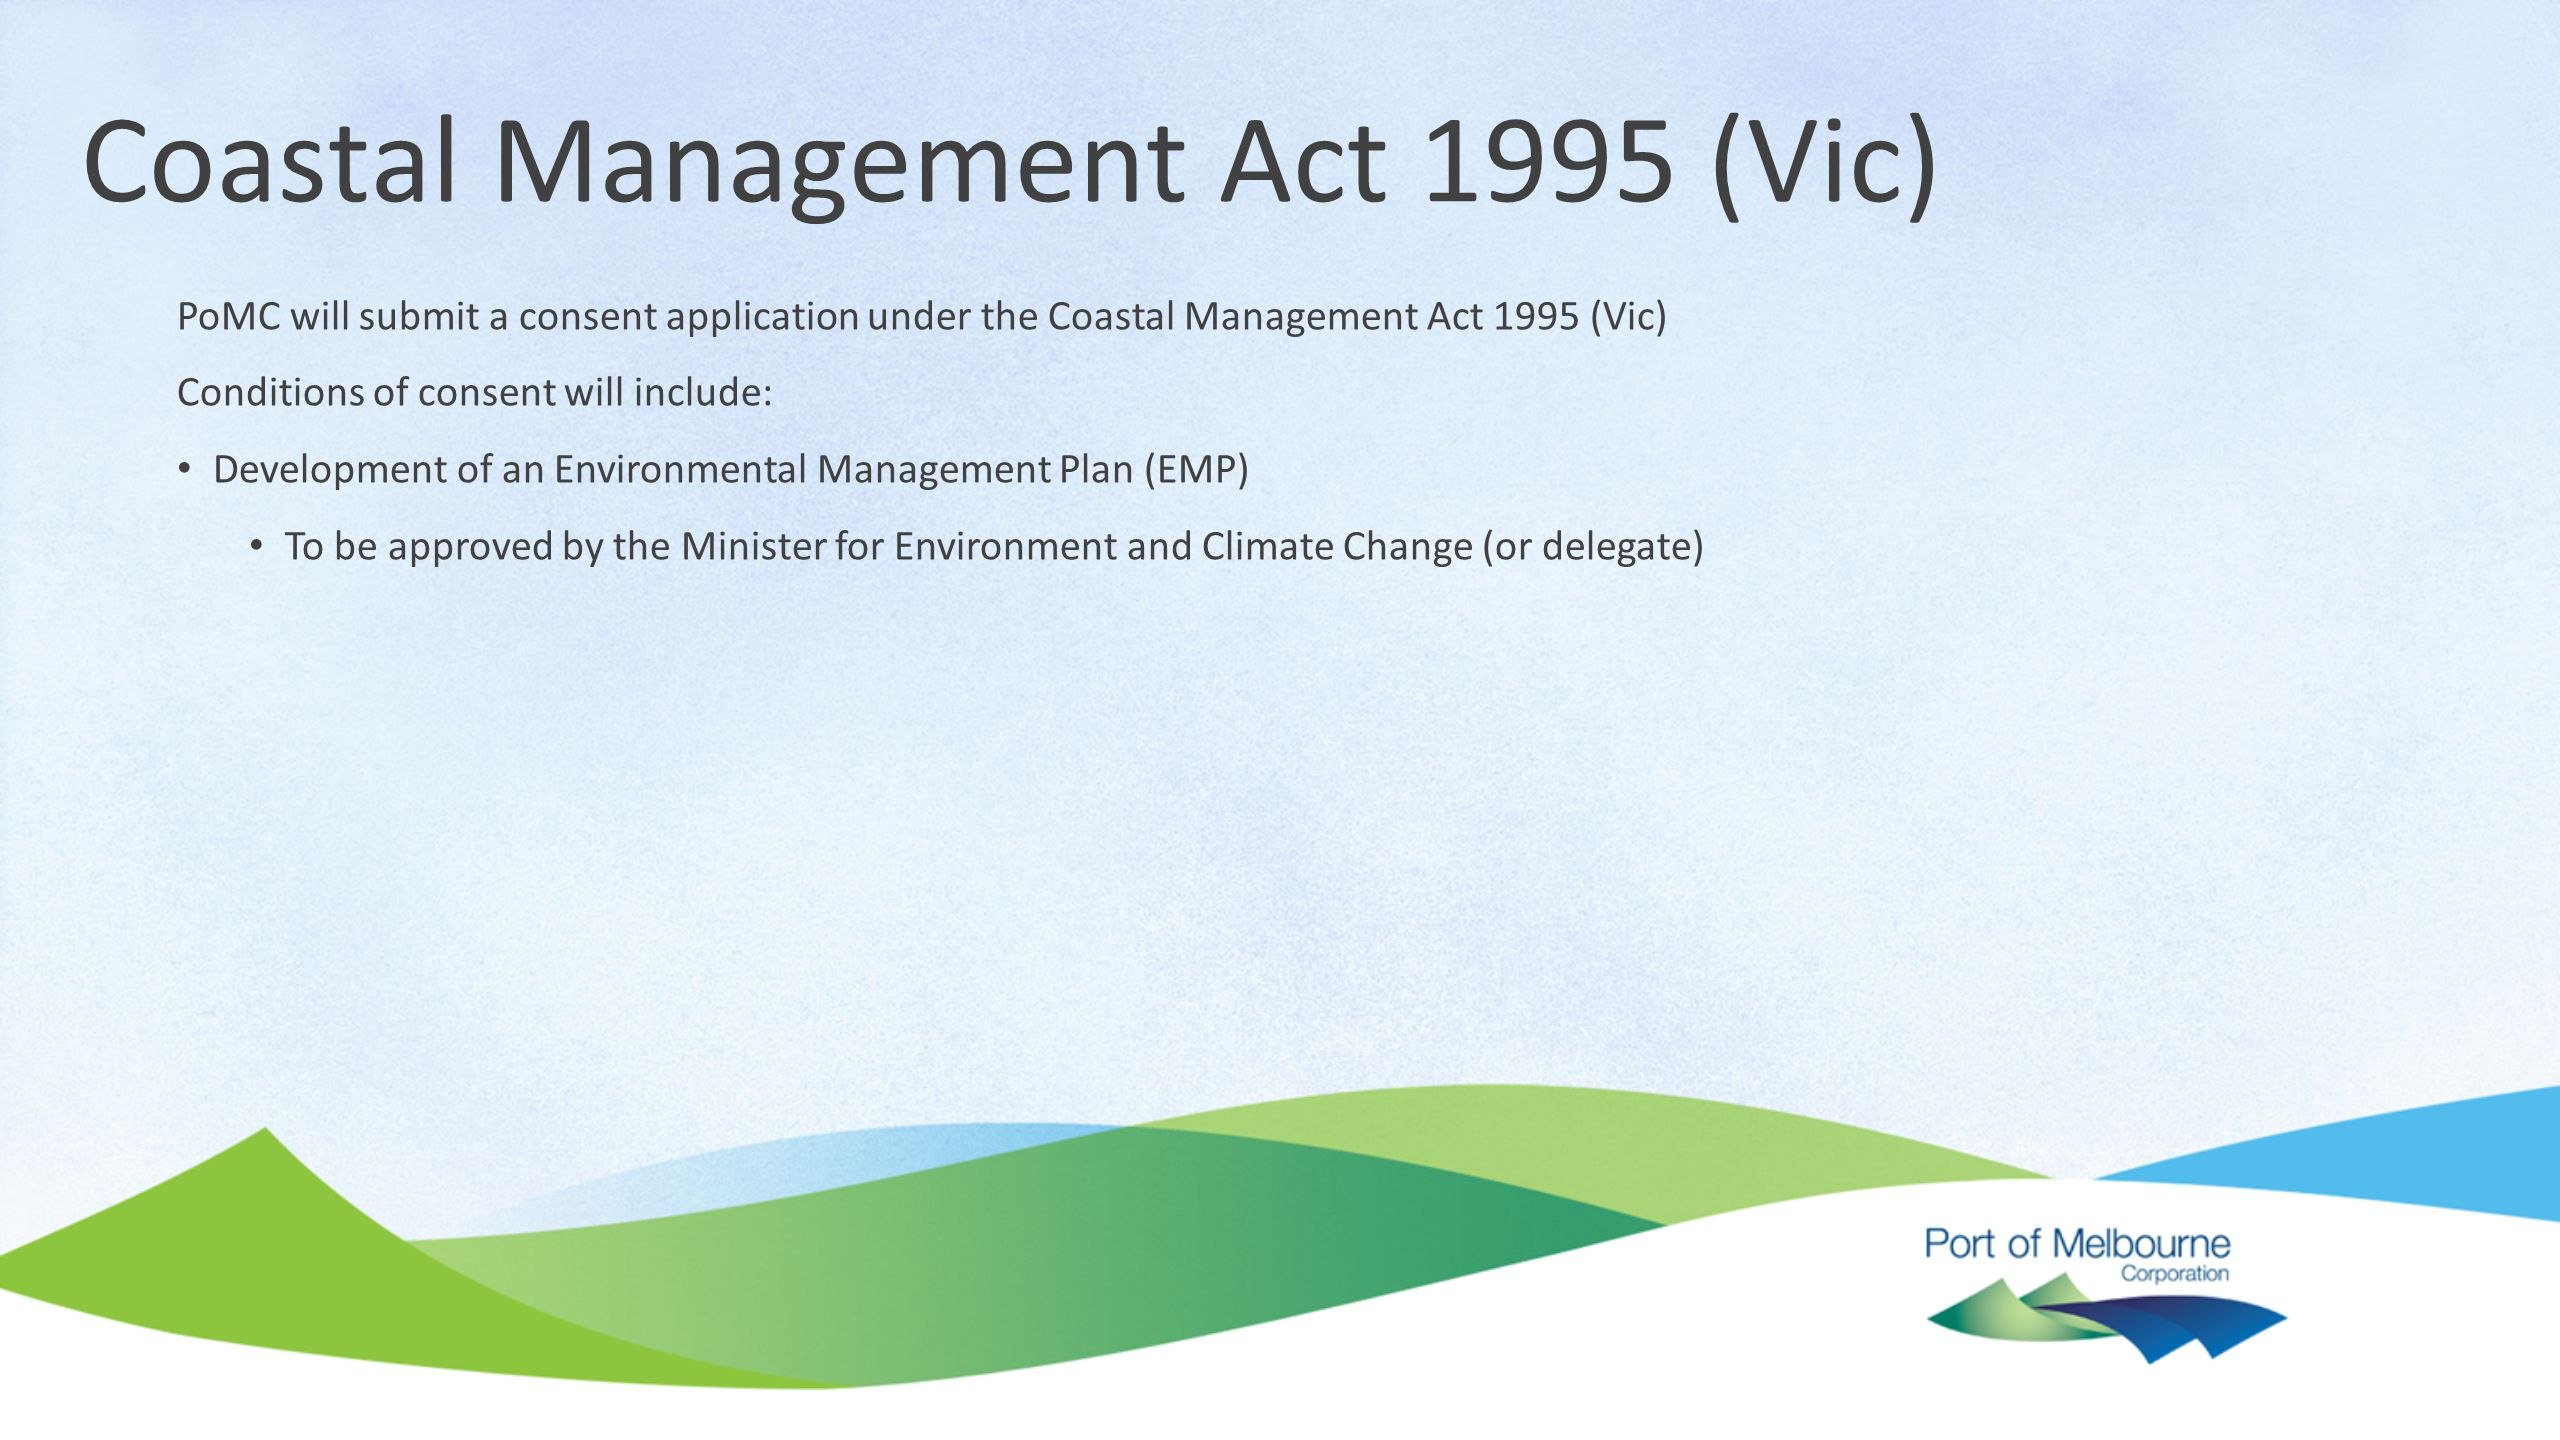 Coastal Management Act 1995 (Vic) PoMC will submit a consent application under the Coastal Management Act 1995 (Vic) Conditions of consent will include: Development of an Environmental Management Plan (EMP) To be approved by the Minister for Environment and Climate Change (or delegate)